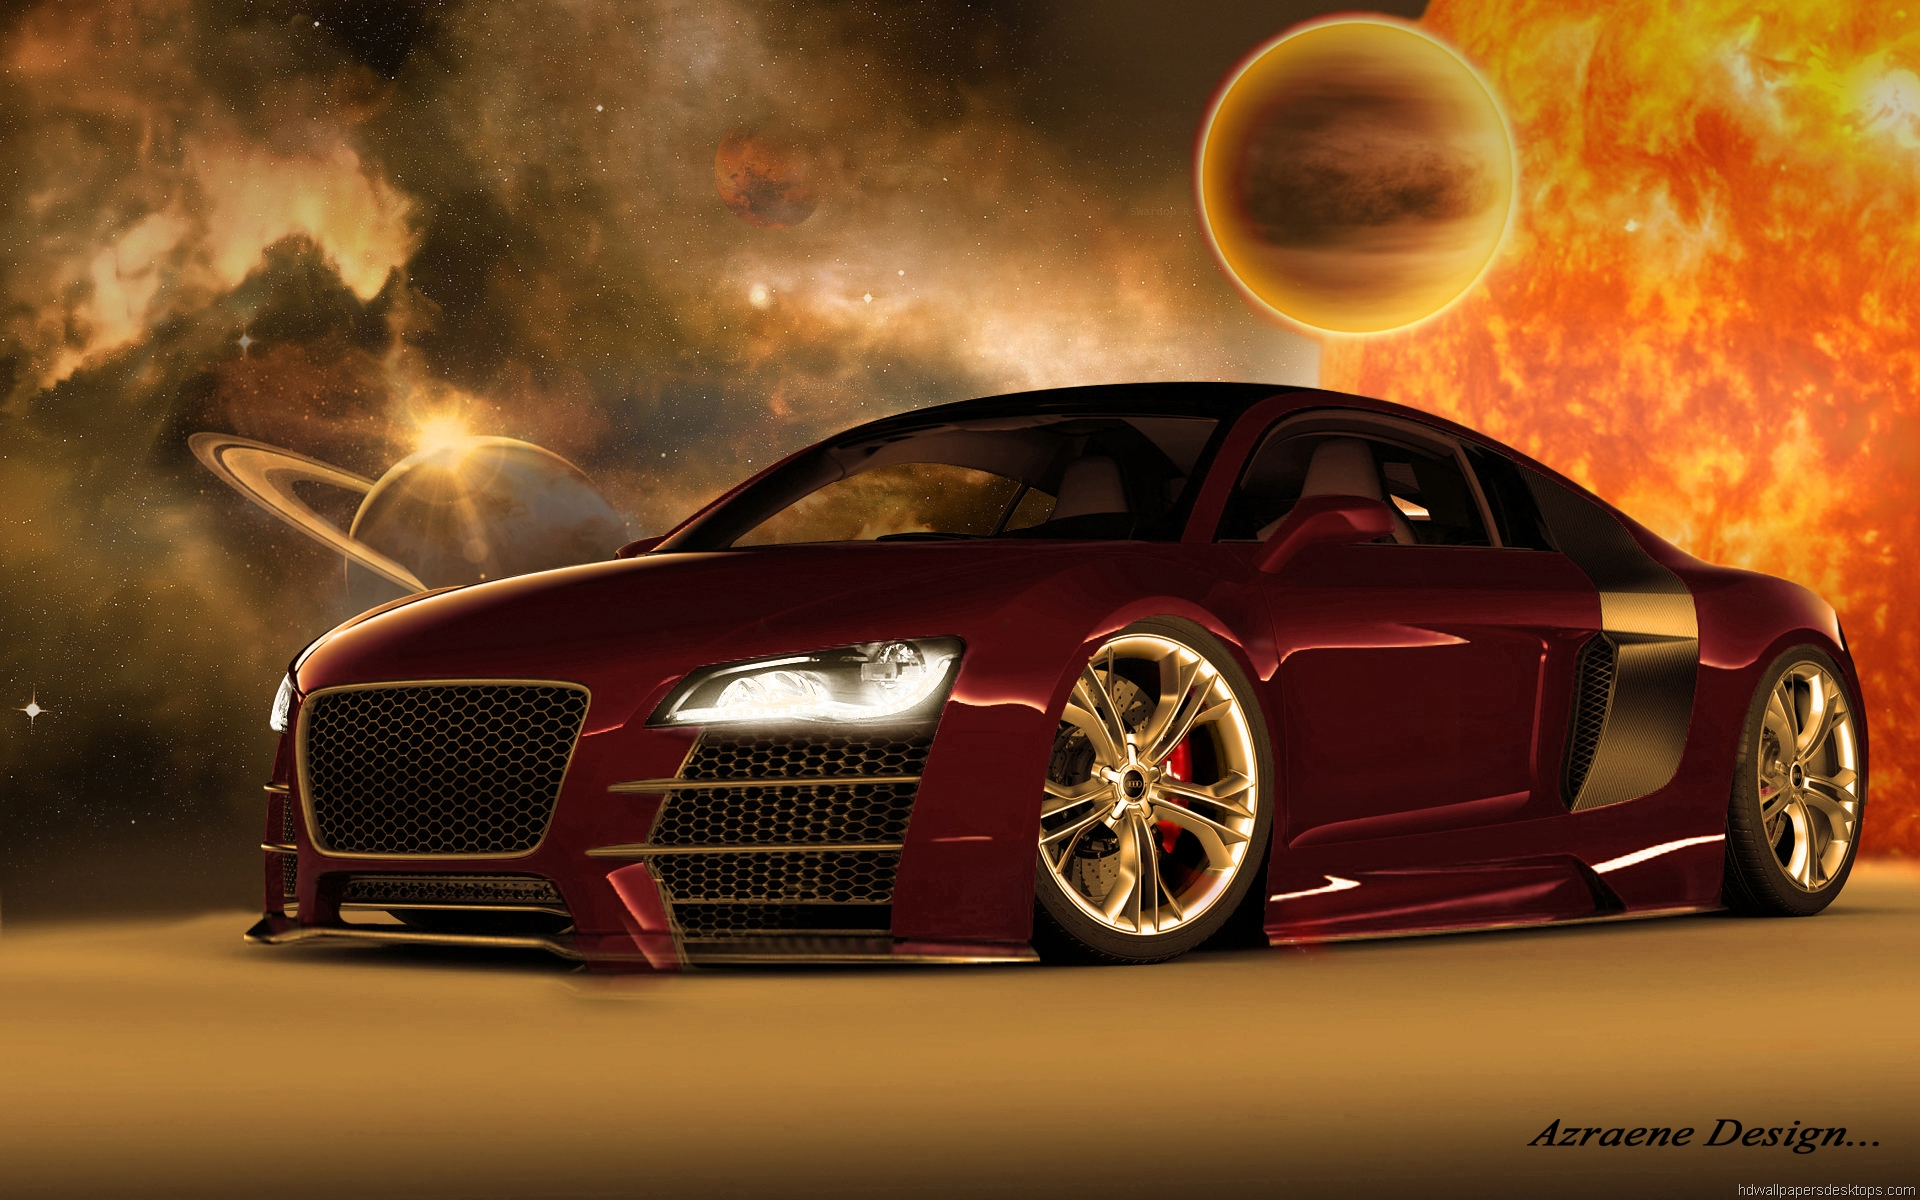 hd 1080p wallpaper 3d car image gallery - Cool Cars Wallpapers 3d